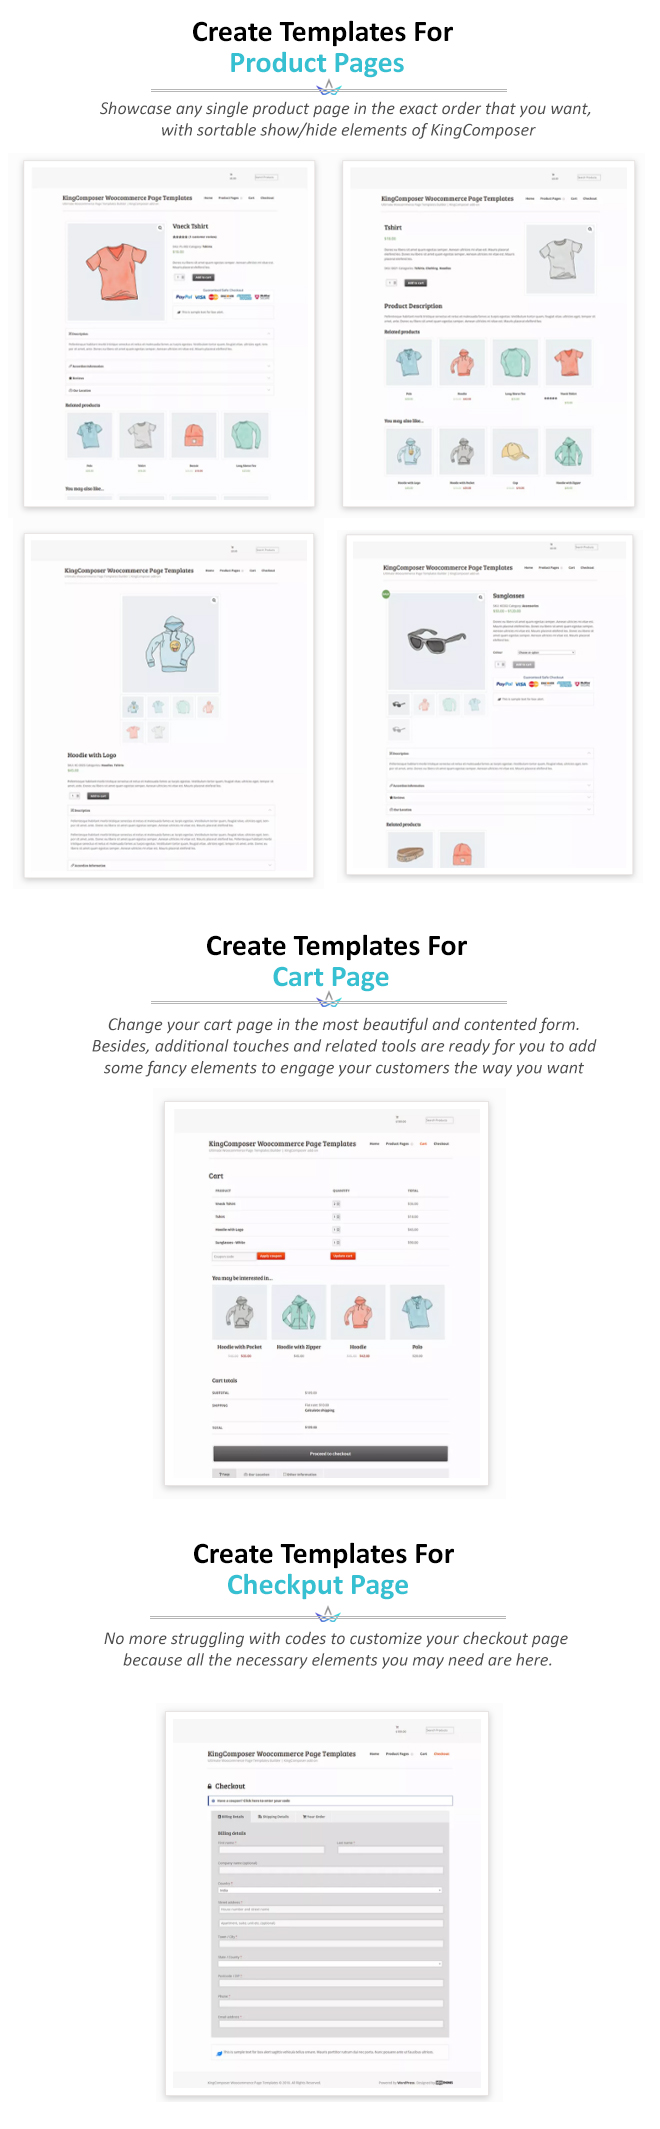 Ultimate Woocommerce Page Templates Builder | KingComposer-Add-On - 1